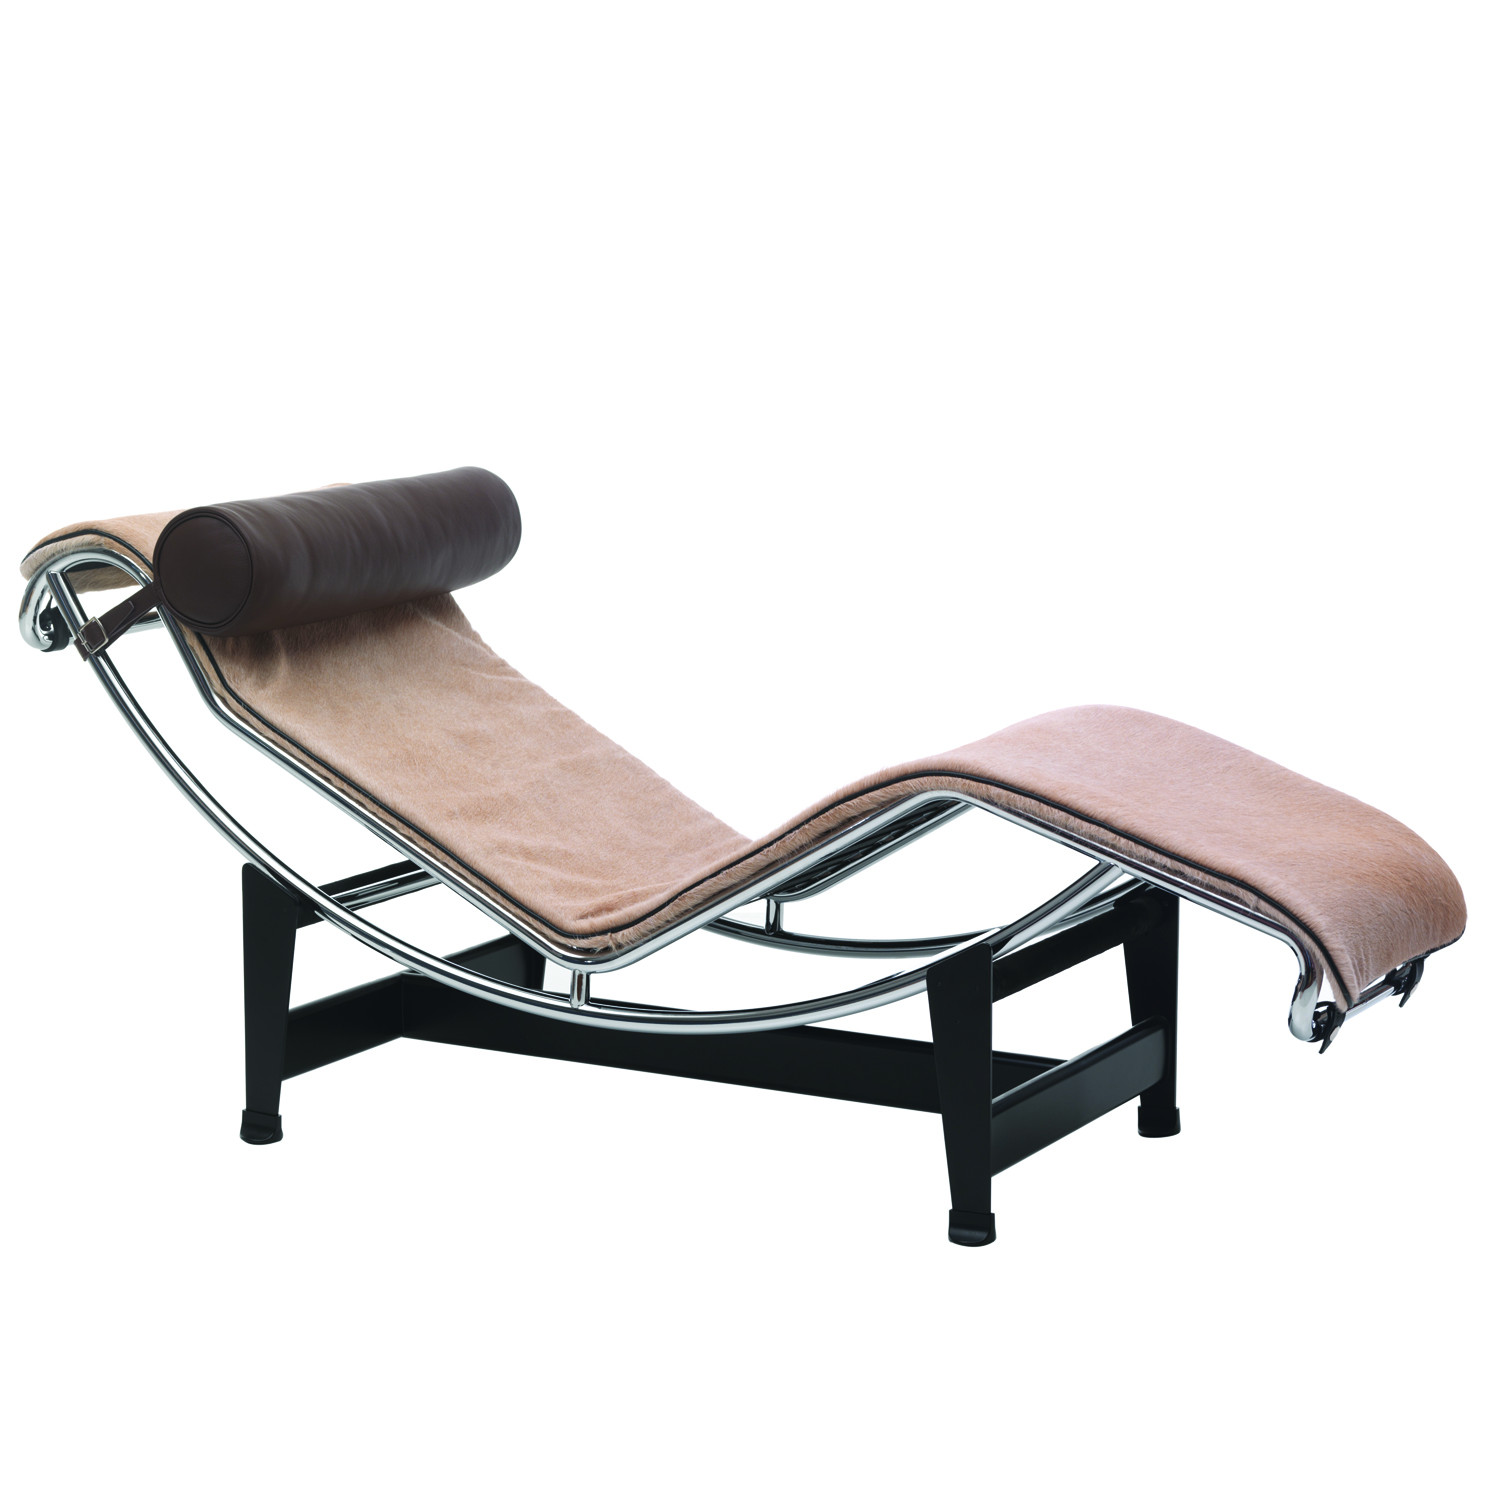 Lc4 chaise longue modern designer apres furniture for Chaise lounge corbusier